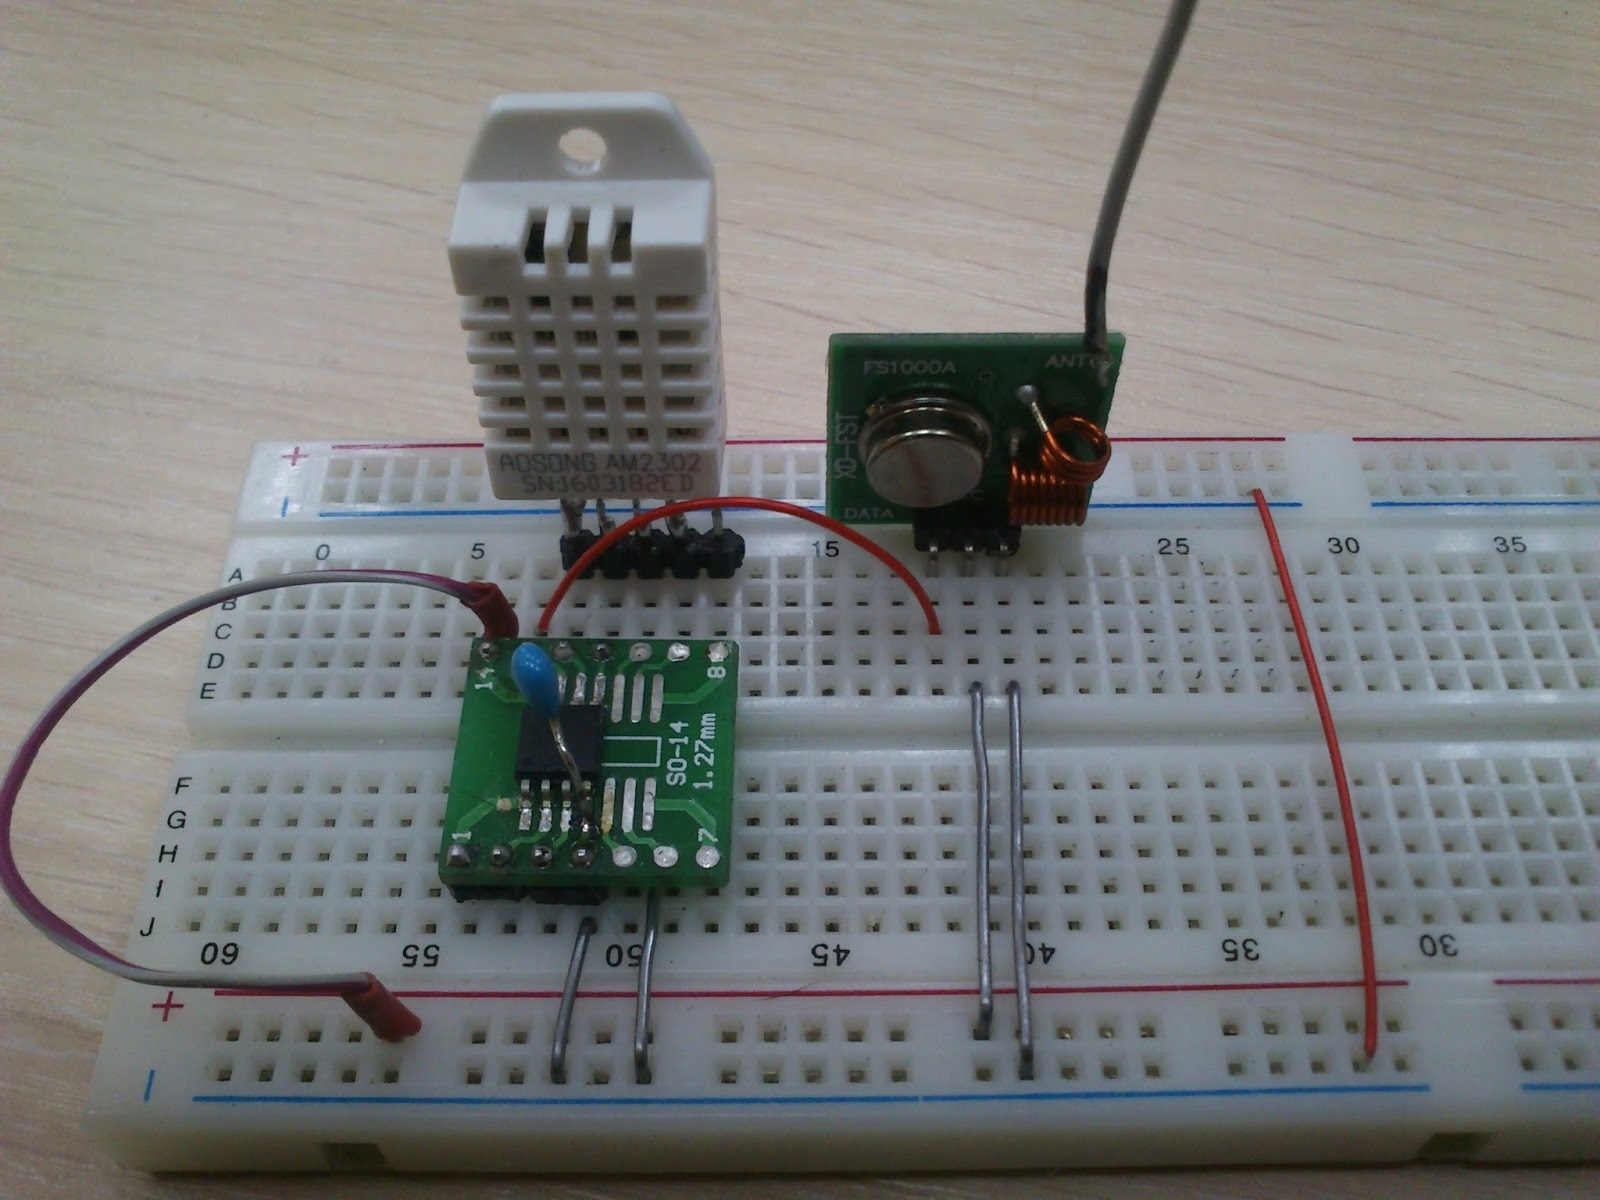 Microcontroller home projects: Wireless DHT22 Sensor 2 0